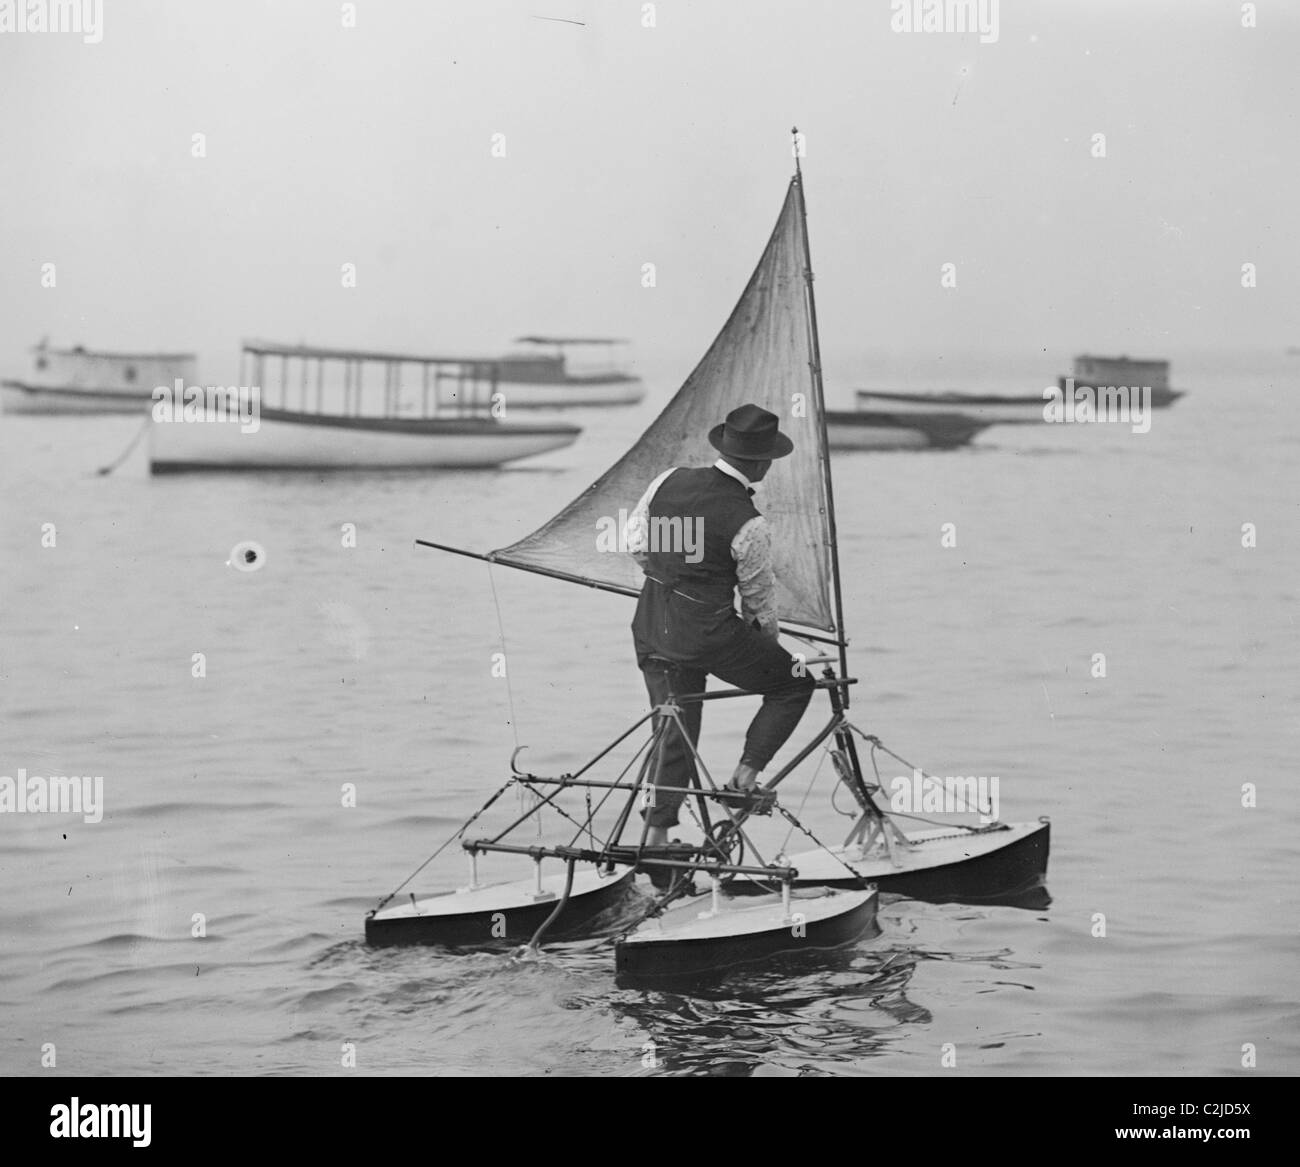 Man stands on Sail Driven water Tricycle - Stock Image